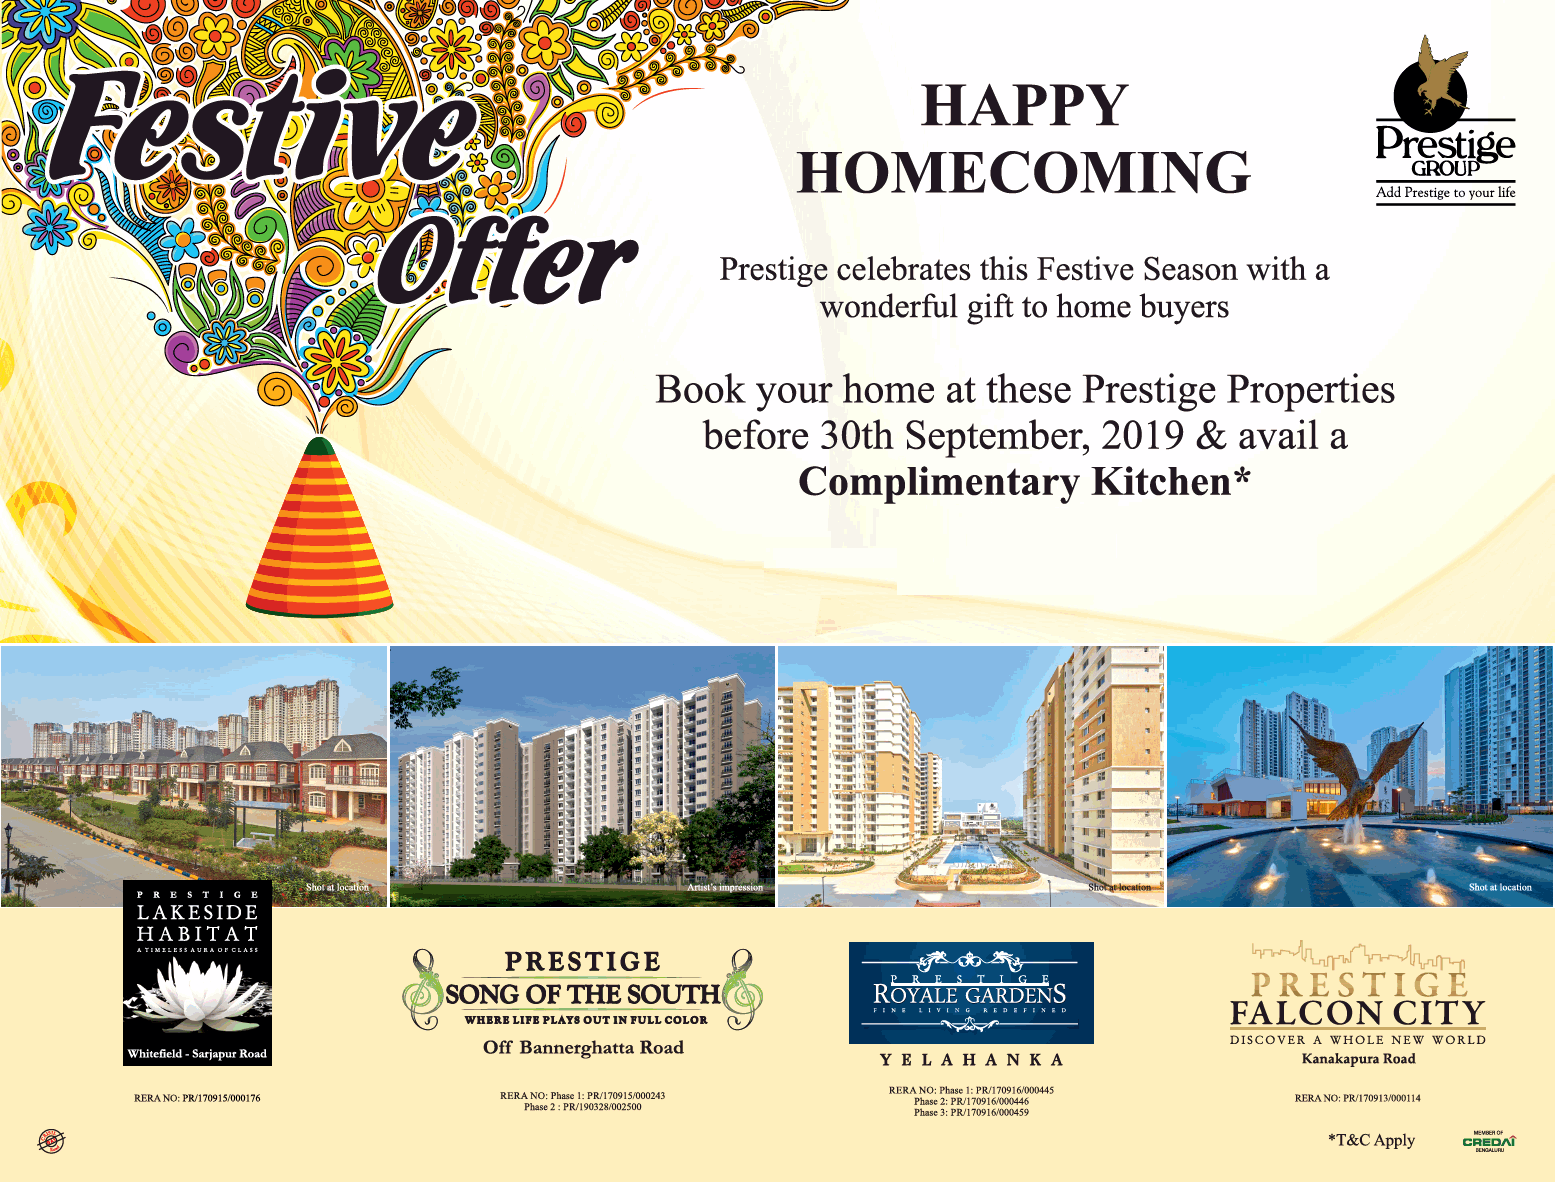 Book your home at these Prestige Properties before 30th September 2019 avail a complimentary kitchen Bangalore